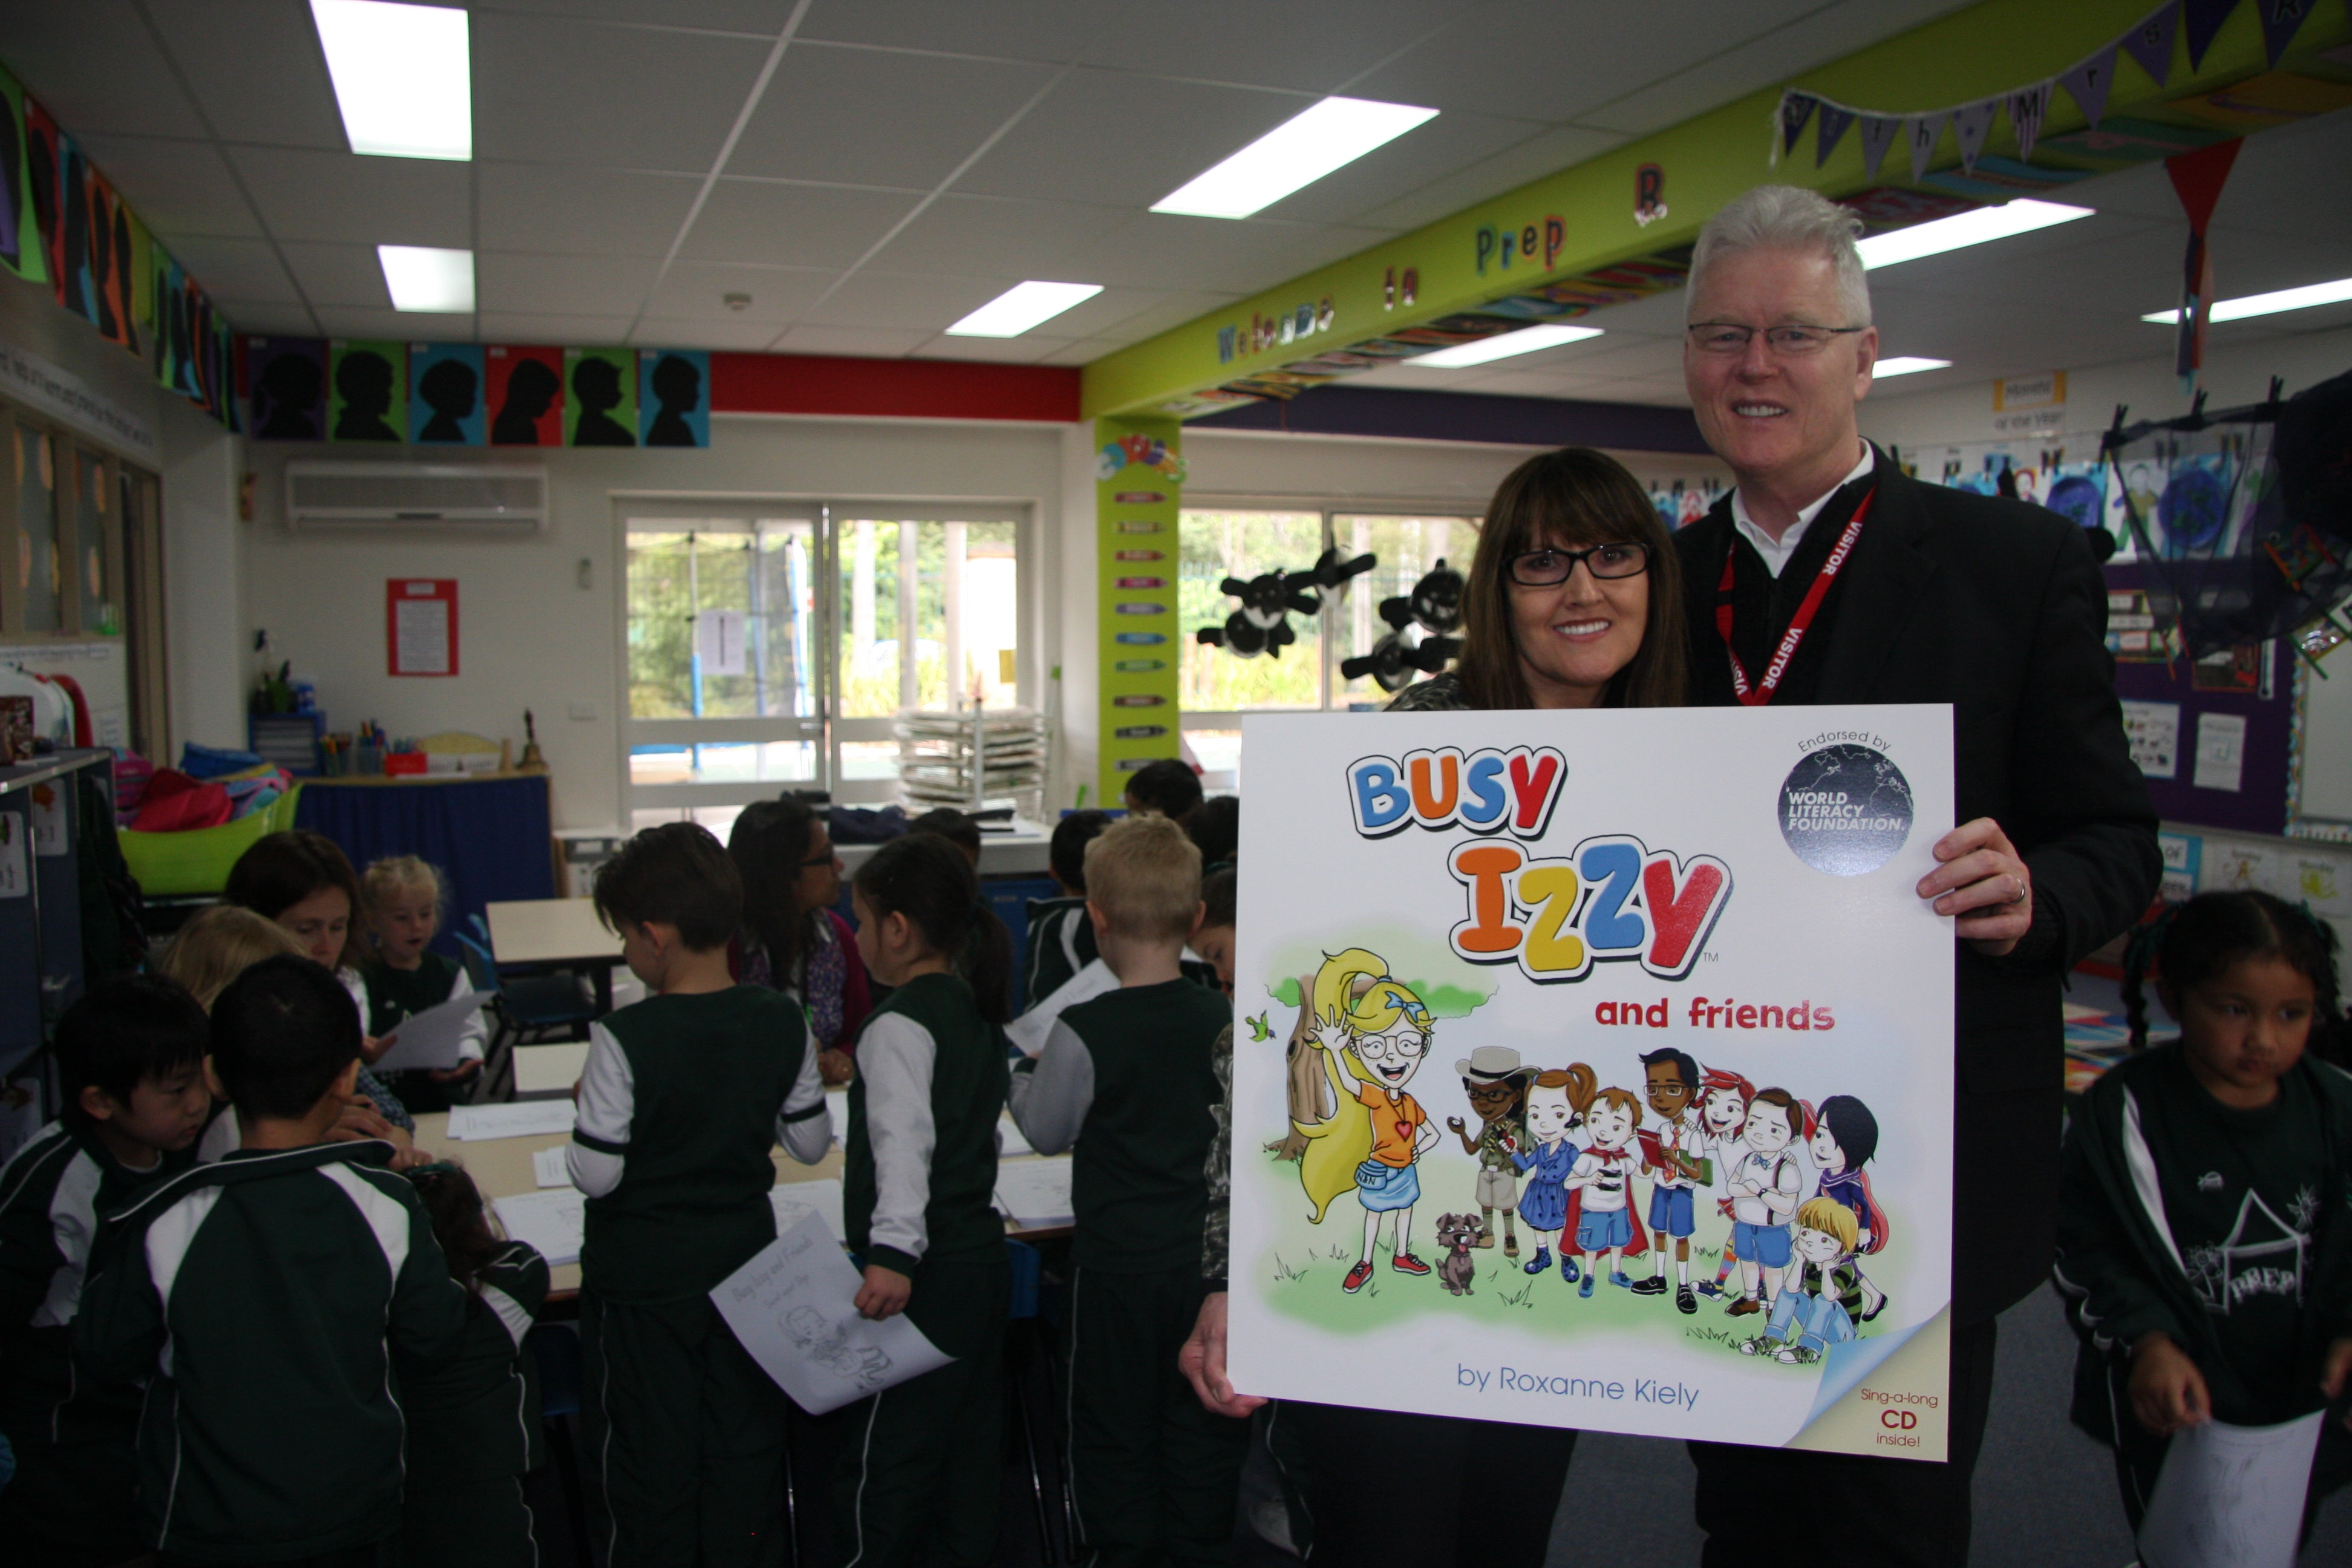 Roxanne Kiely and Stephen Kiely present Busy Izzy and Friends to the students of Pacific Hills Primary school.